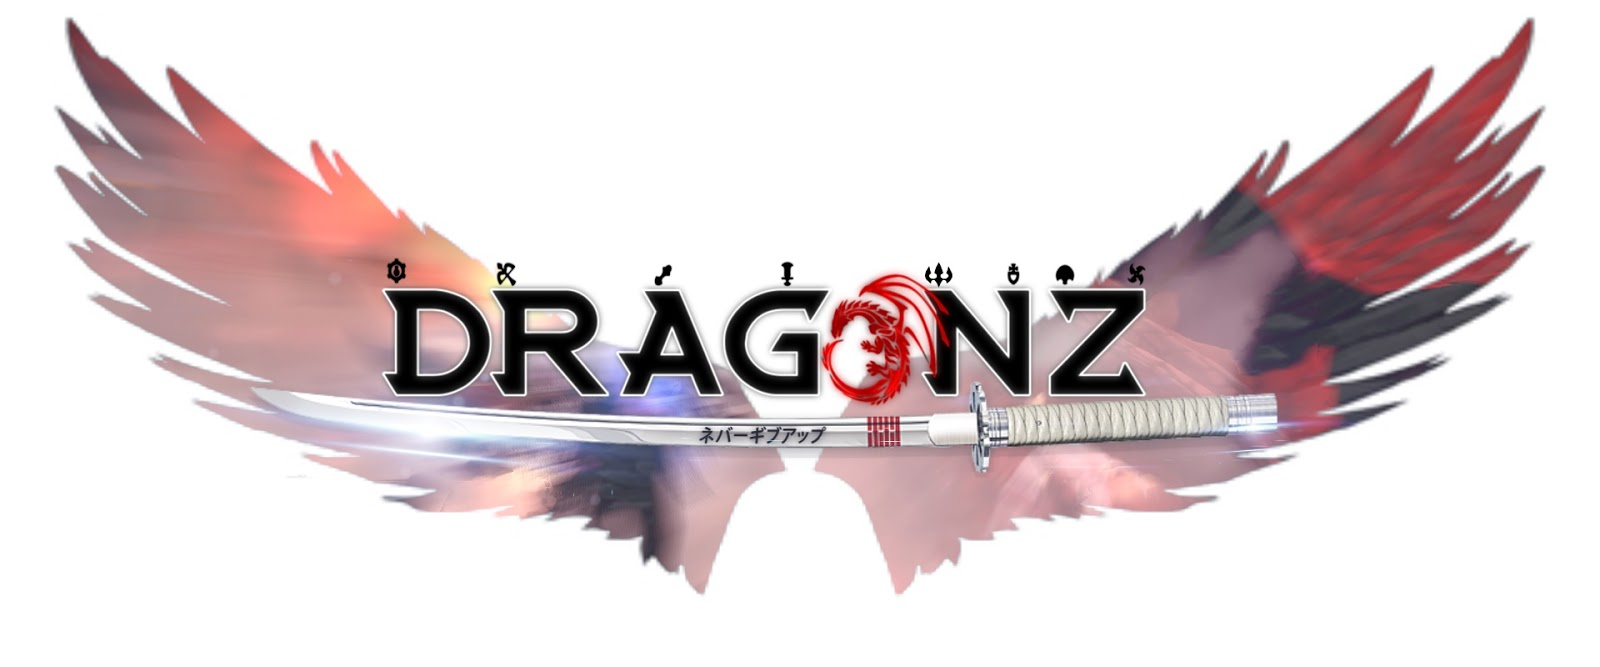 Dragonz | Euro Palace Casino Blog